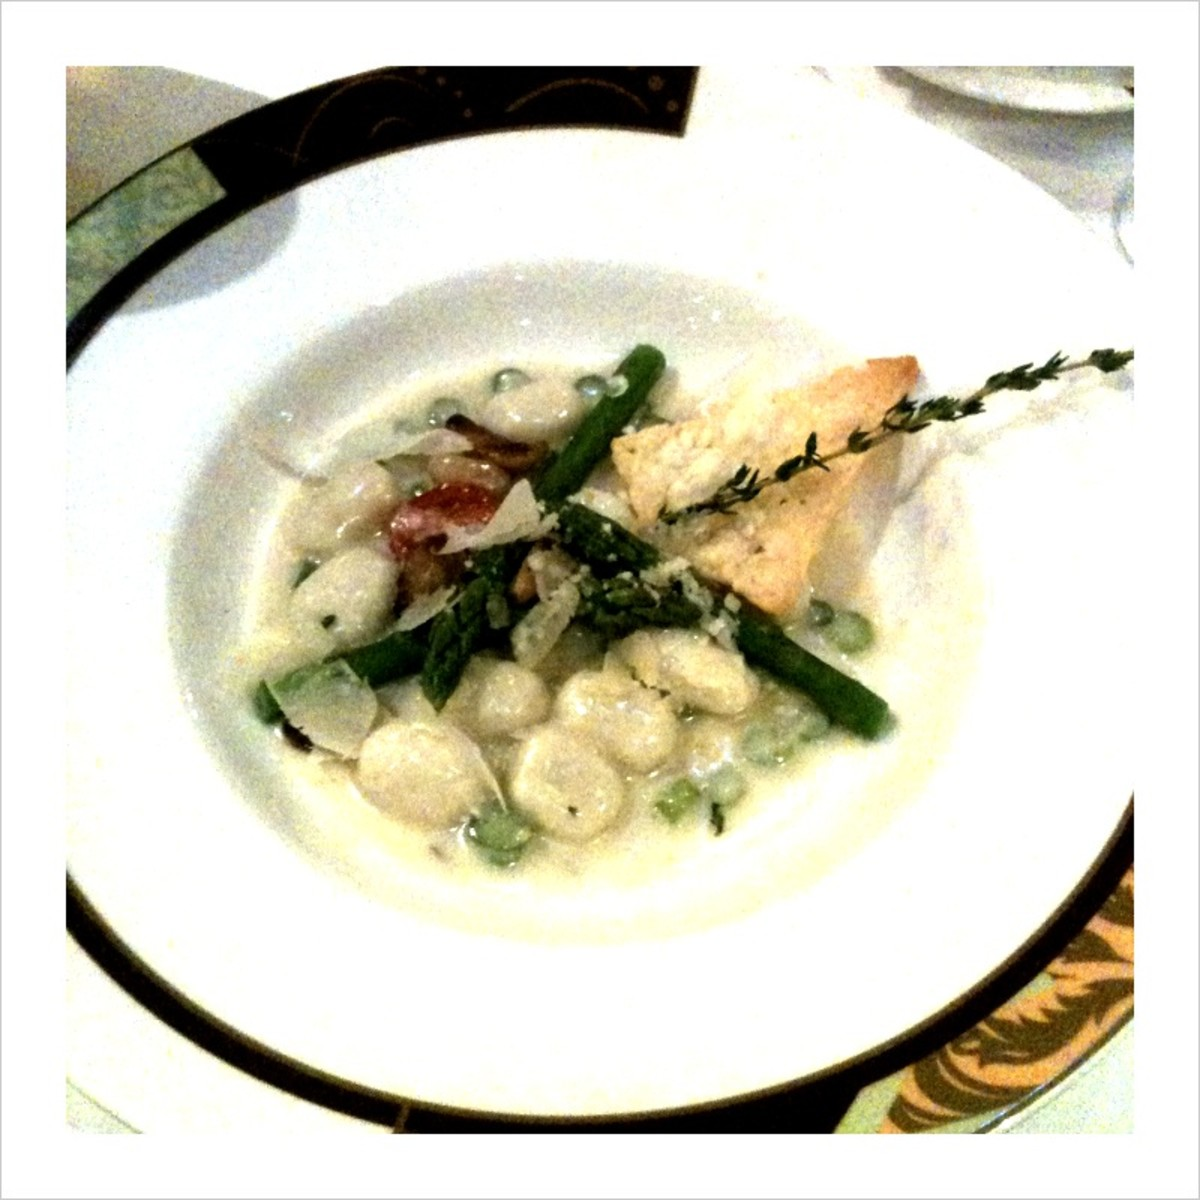 My Palo Dinner: Gnocchi with Asparagus in Gorgonzola Sauce